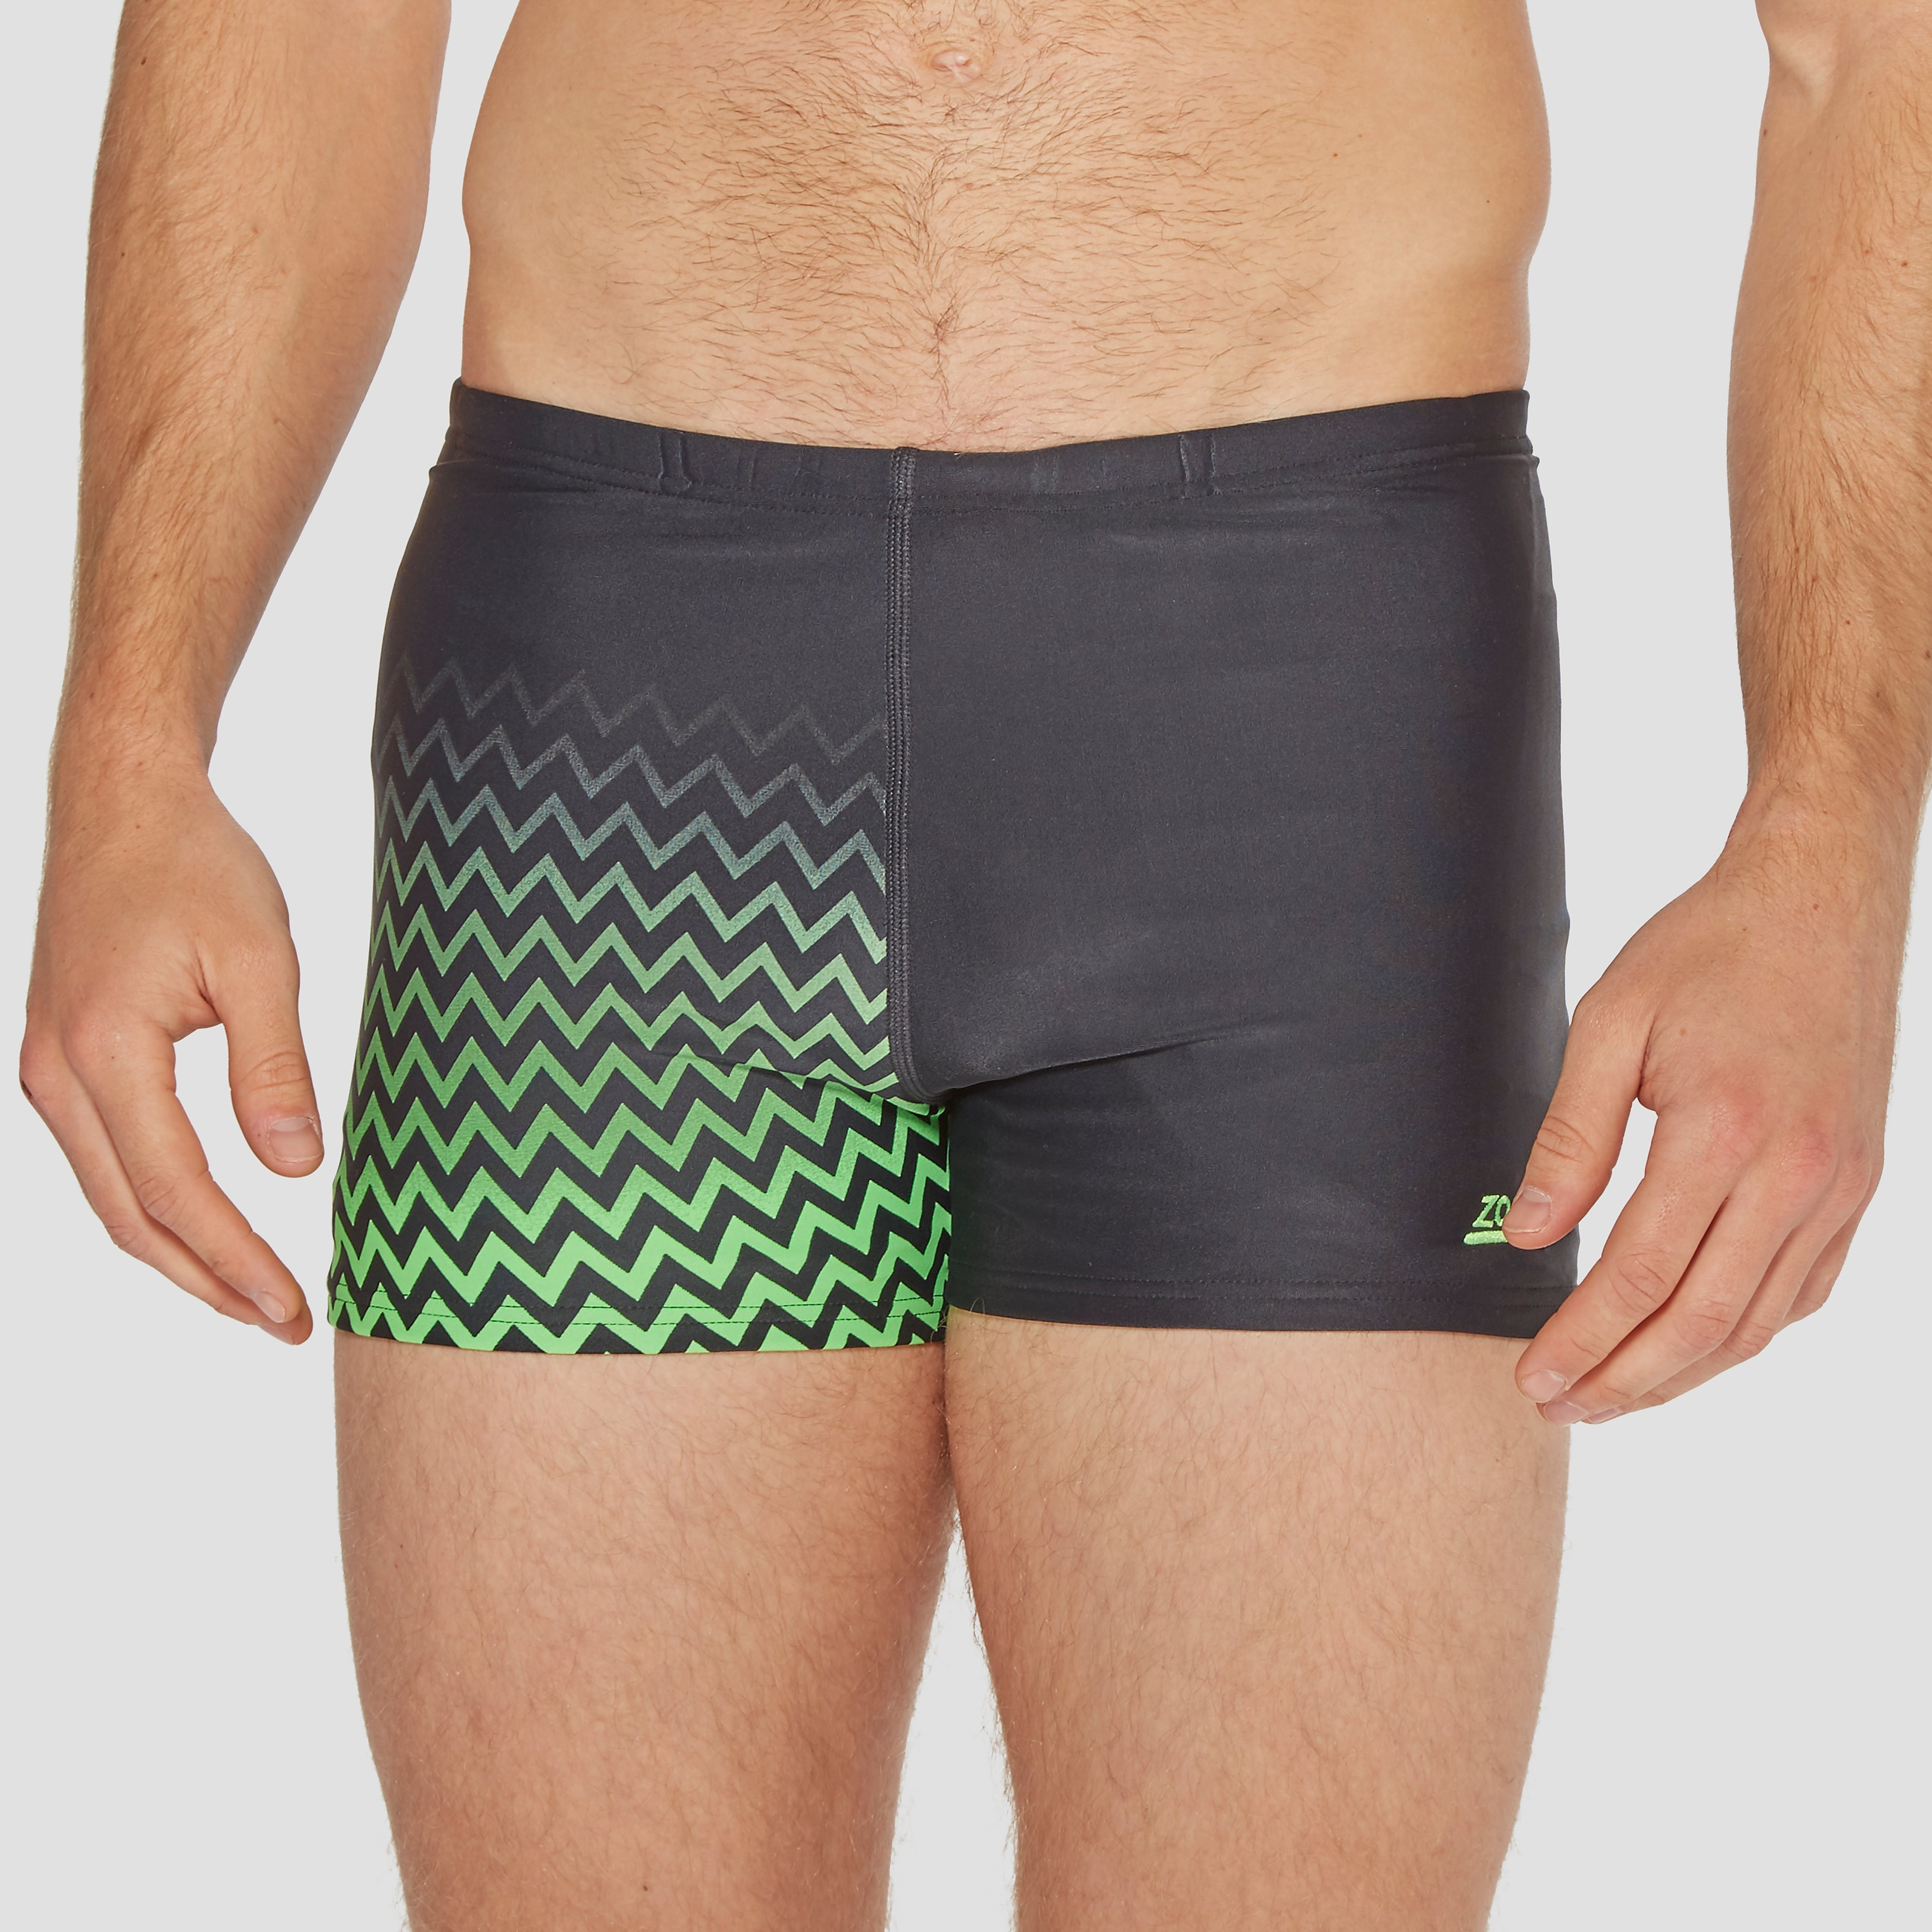 Zoggs Chevron Men's Hip Racer